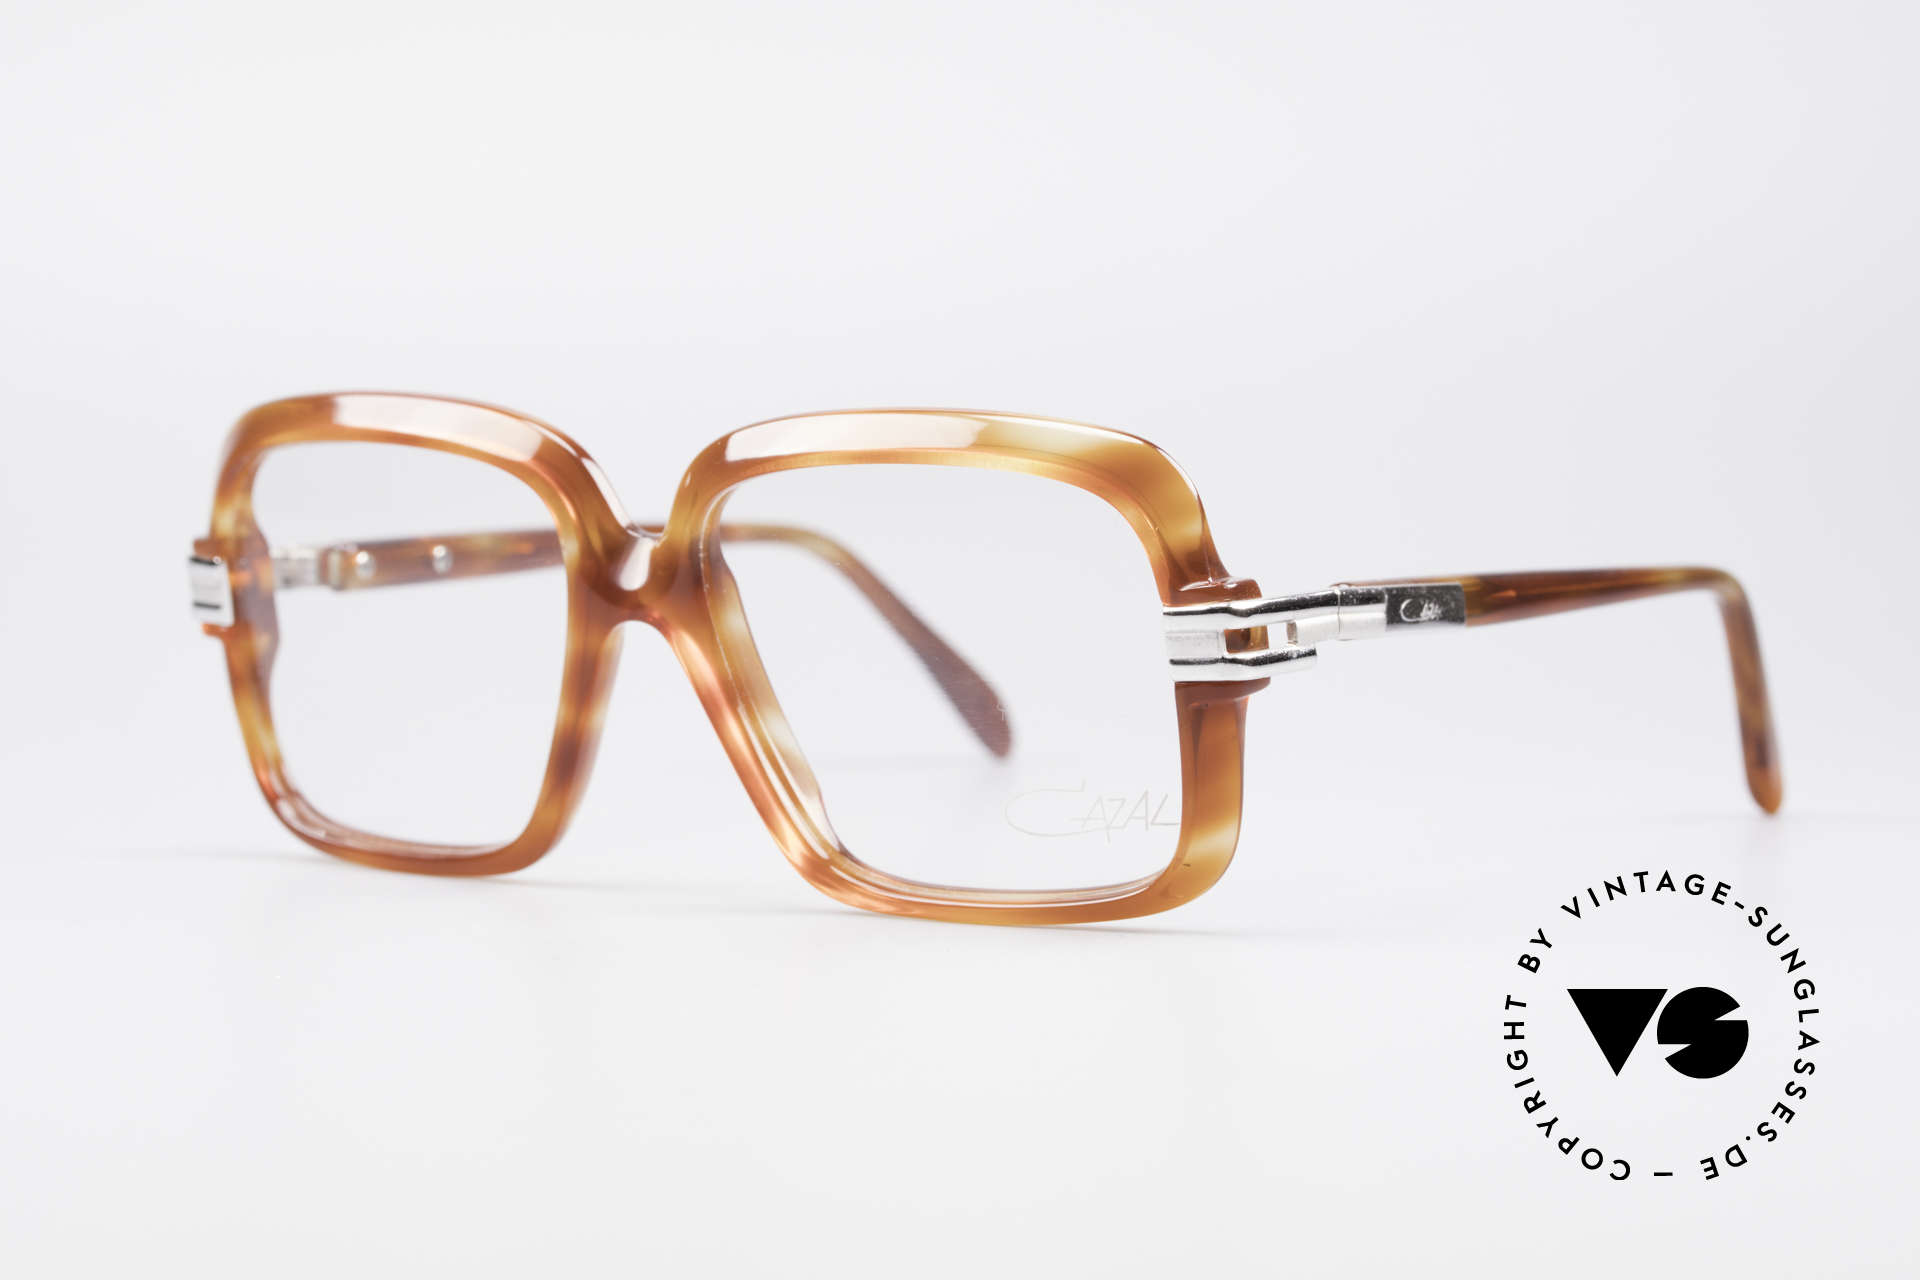 """Cazal 605 70's Frame First Series, Cazal started to mark the frames """"W.Germany"""" in the 80s, Made for Men"""